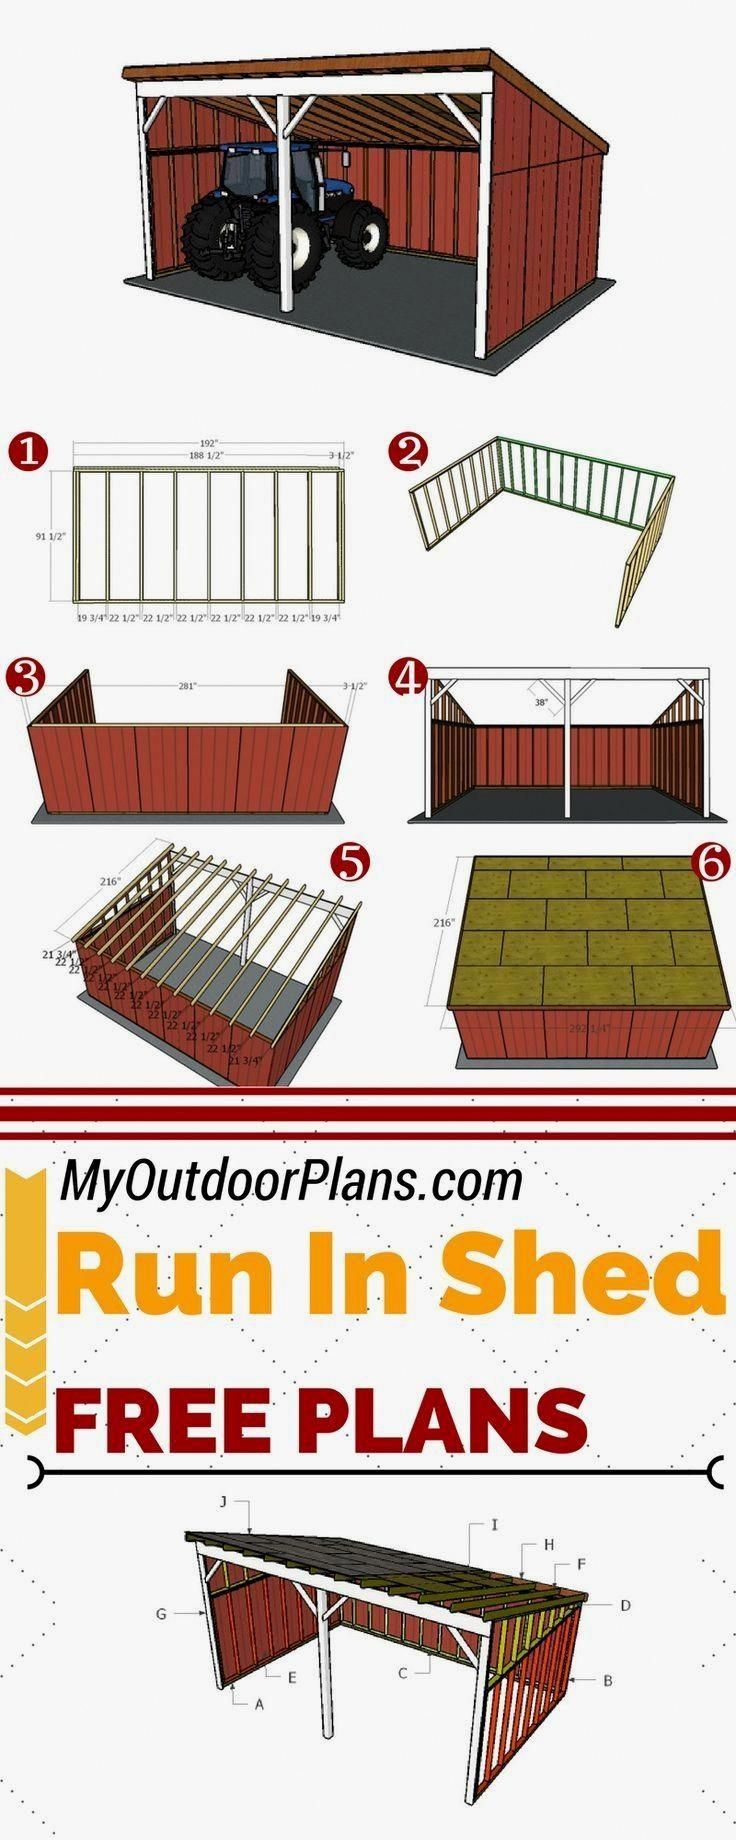 home hardware garden shed plans and pics of building plans for 8x12 garden shed  [ 736 x 1840 Pixel ]